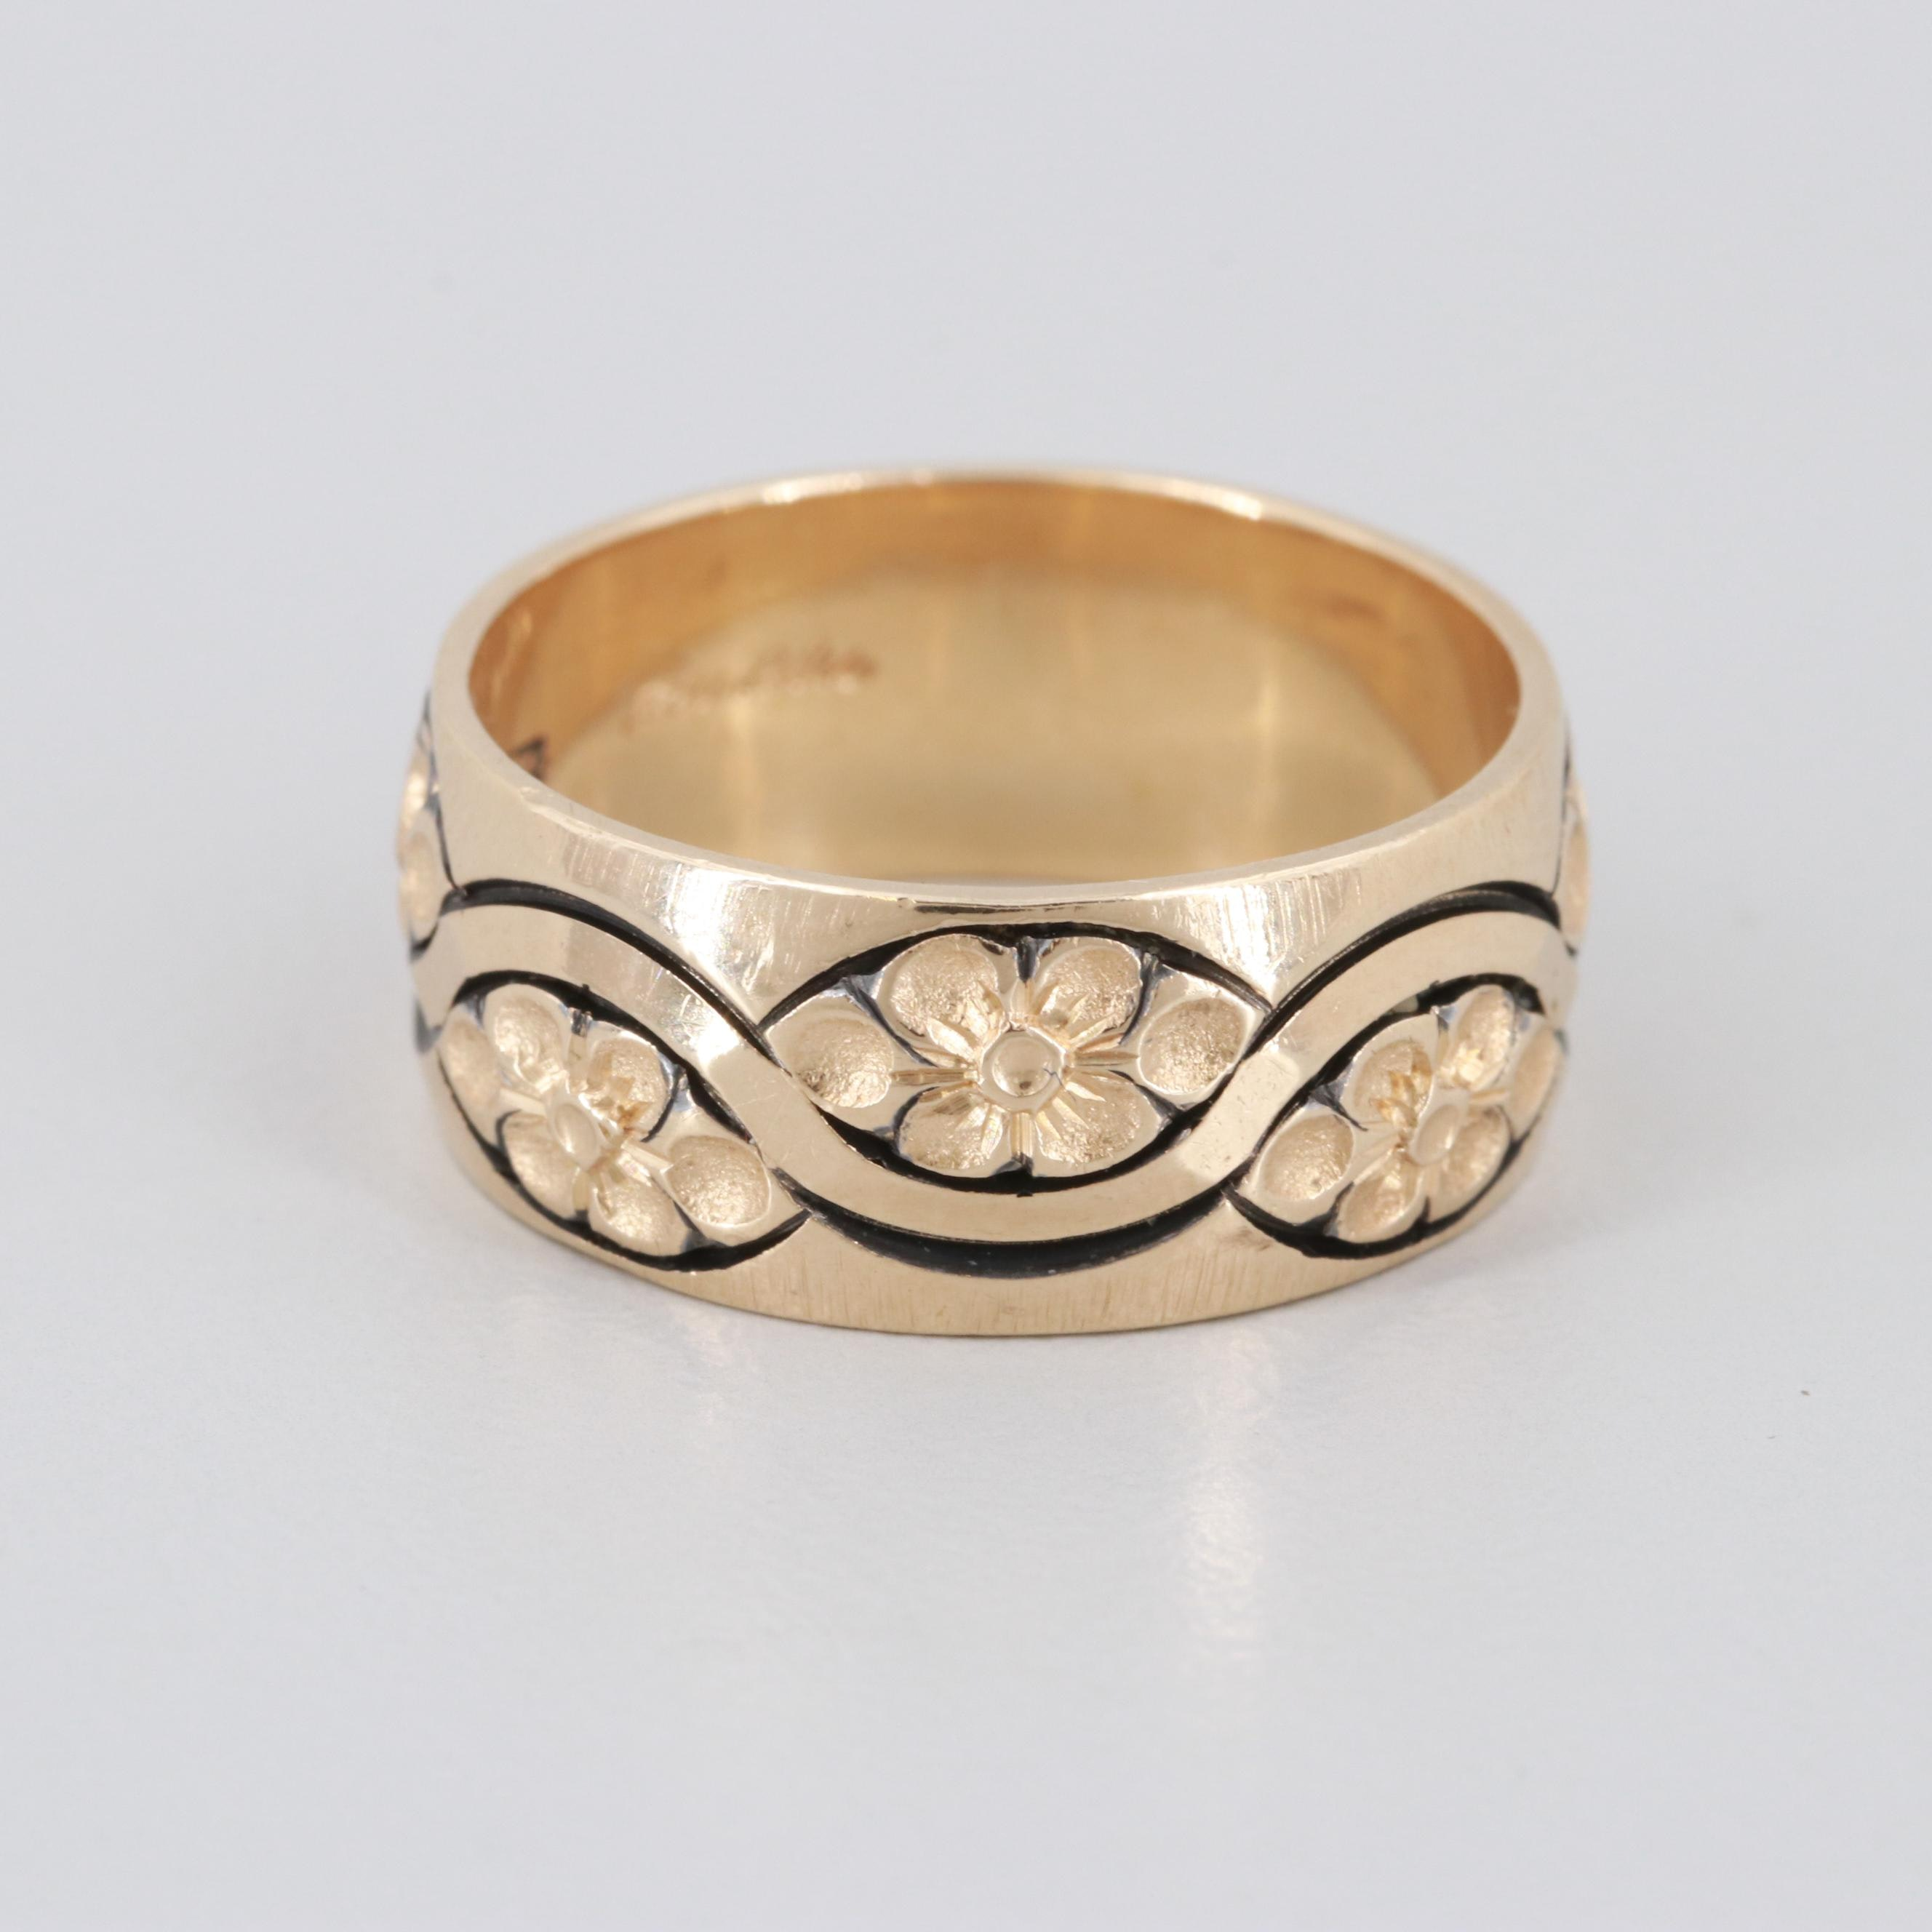 14K Yellow Gold Ring with Oxidized Details